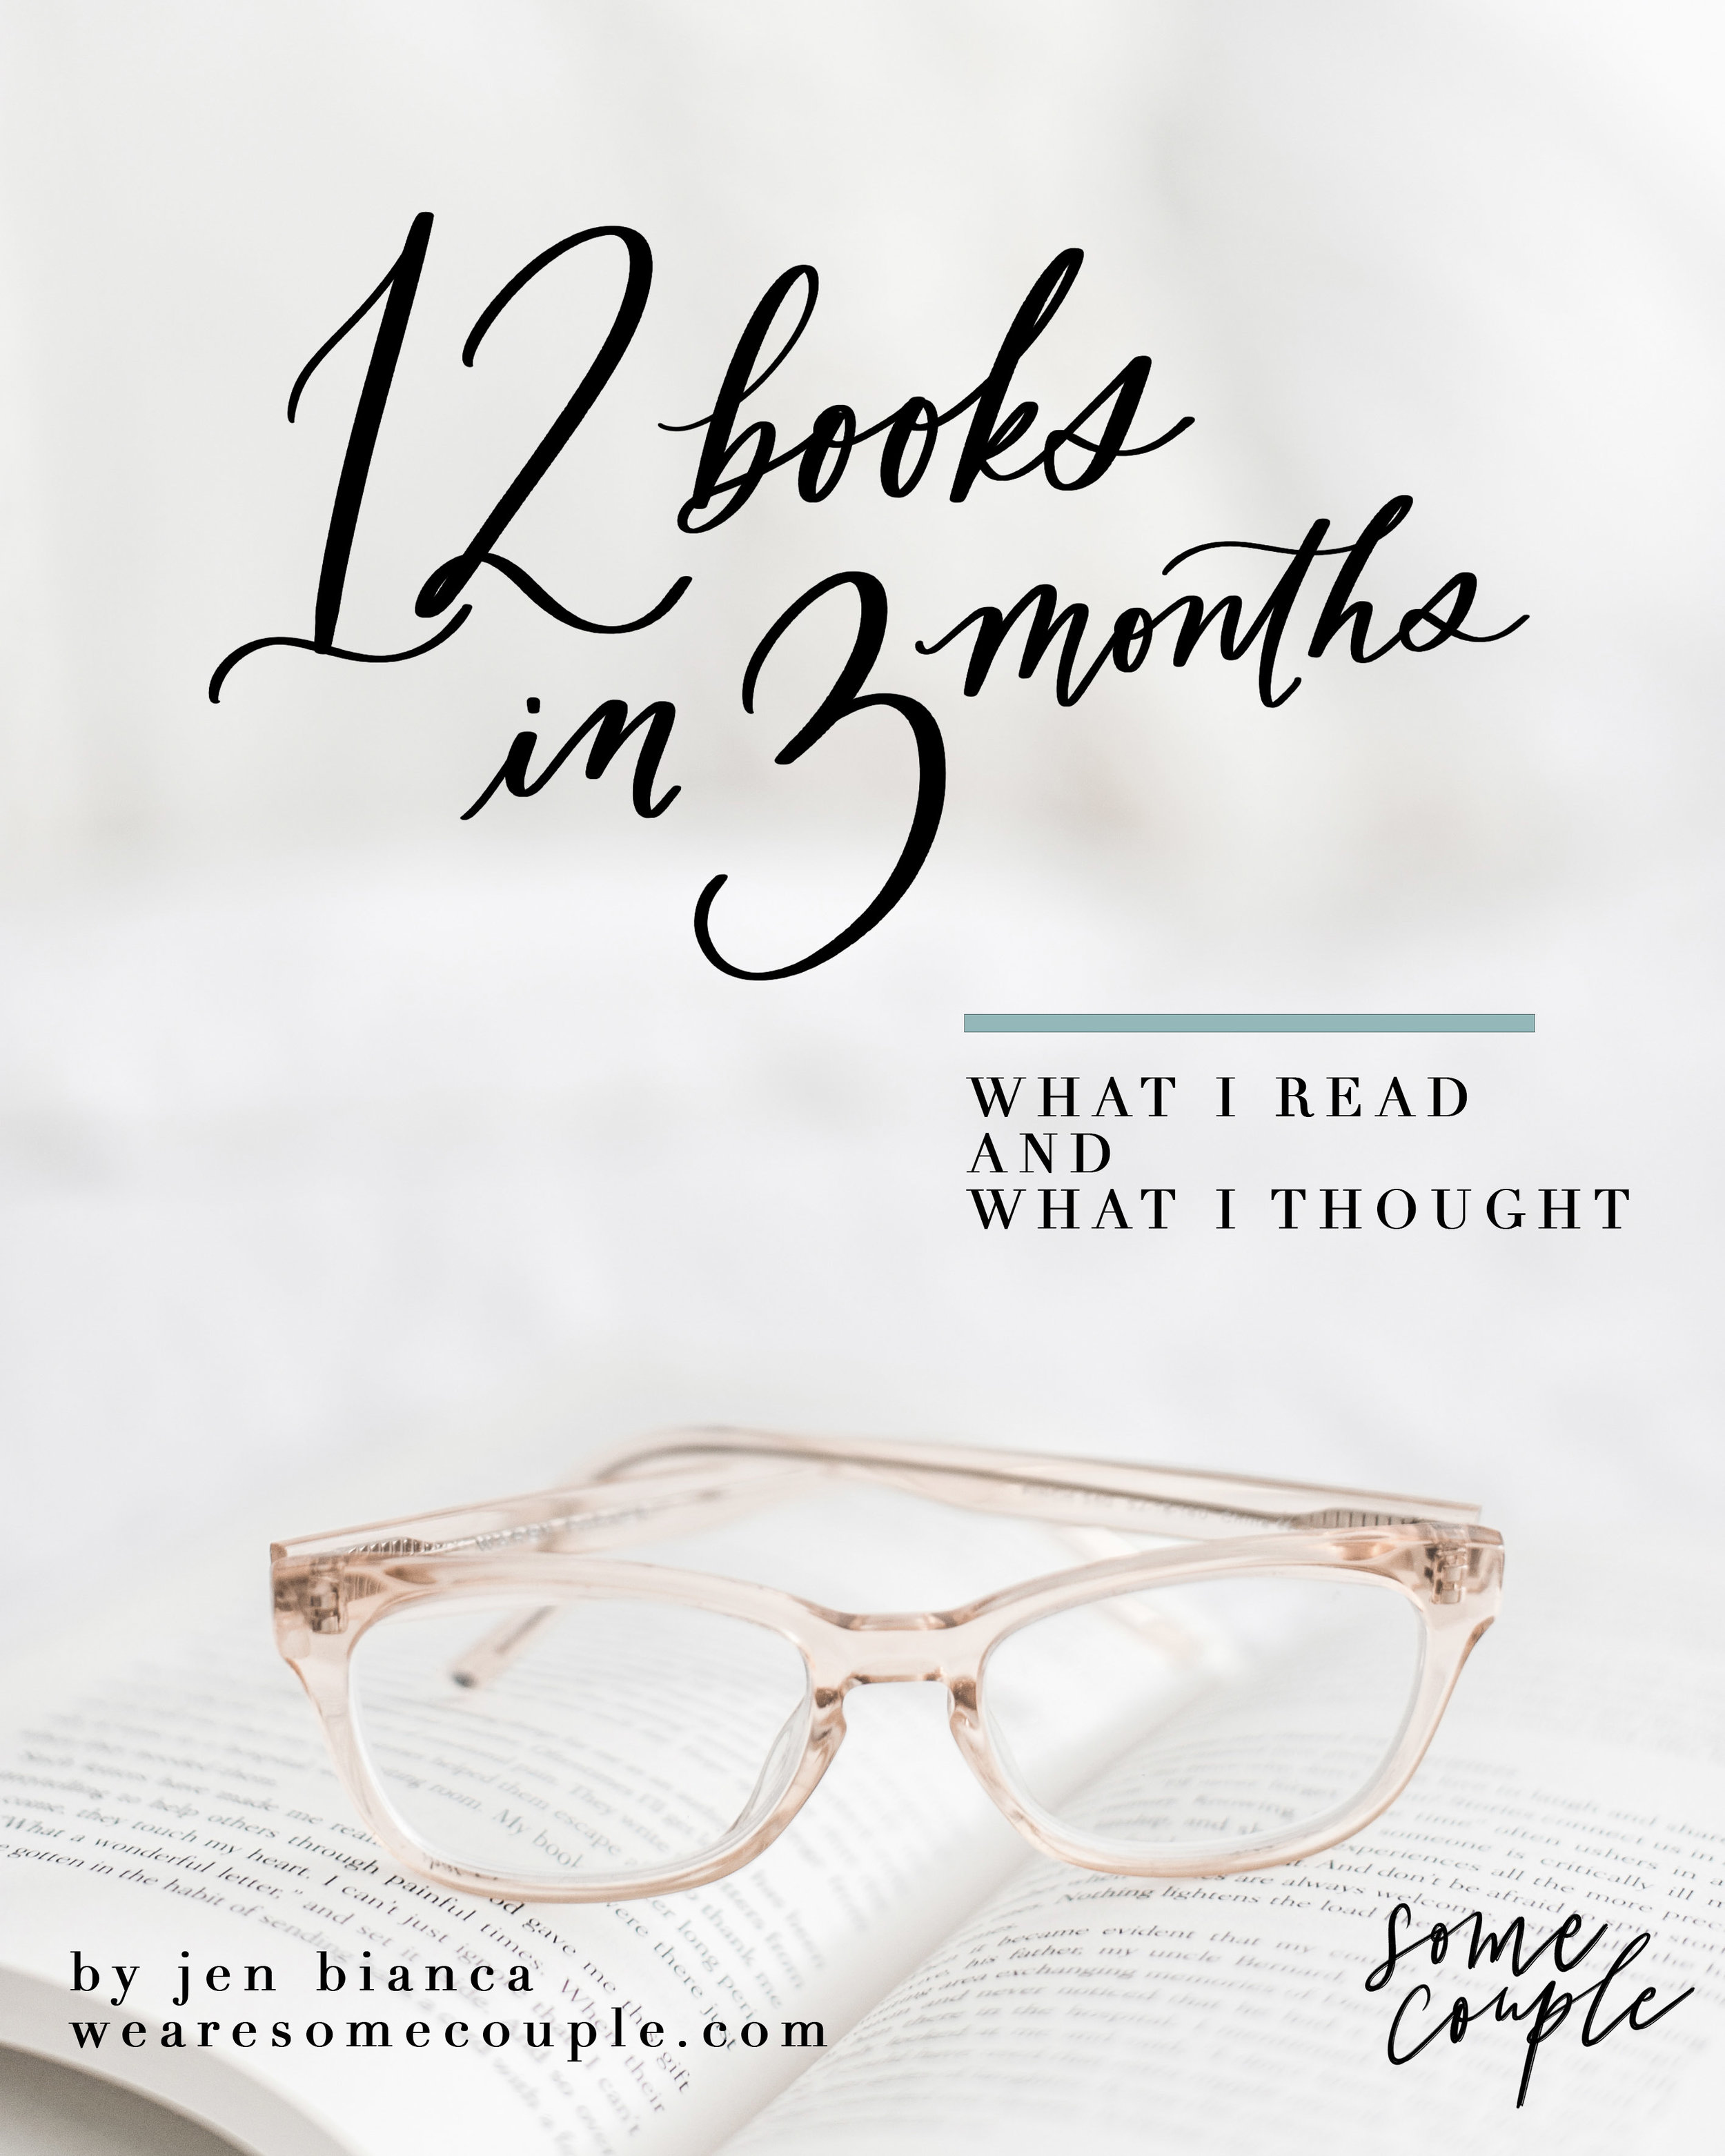 12 books in 3 months - what i read and what i thought - wearesomecouple.com